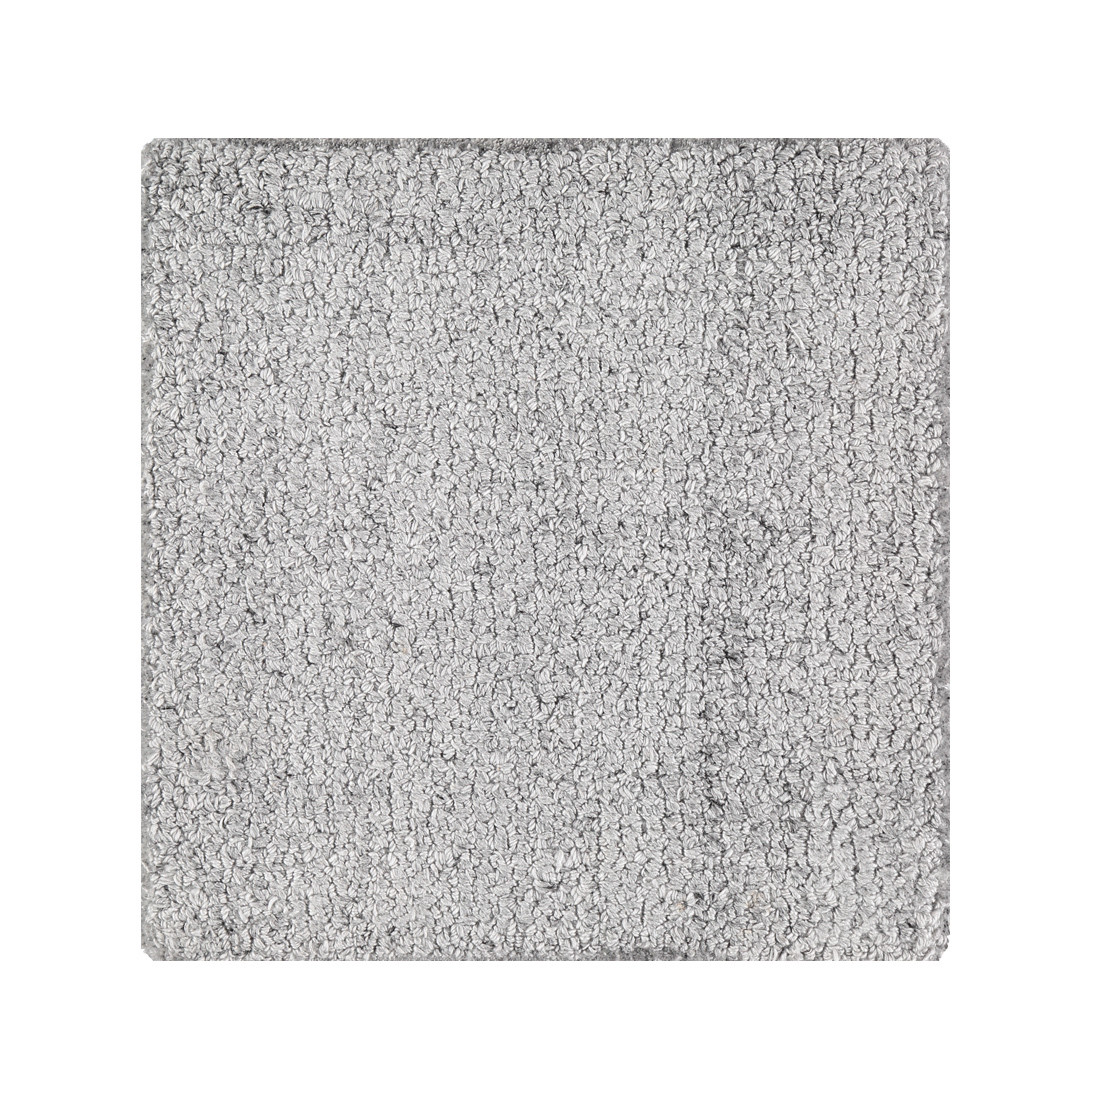 Hartford Handmade Wool Carpet - Silver